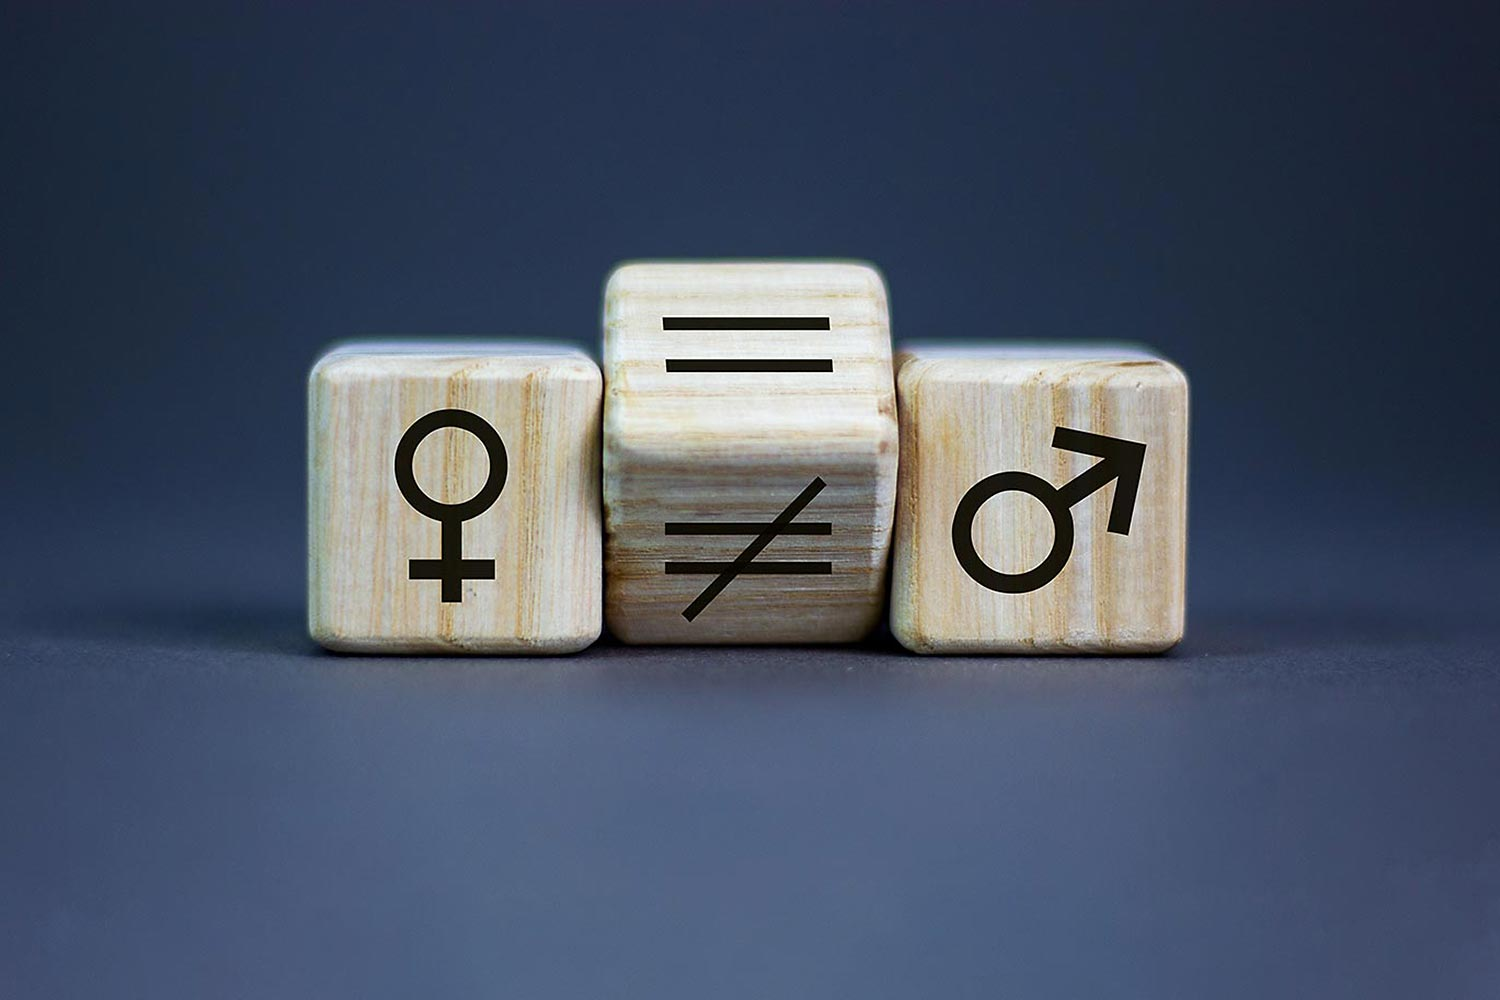 Choosing to challenge gender inequality in the post-COVID future of work